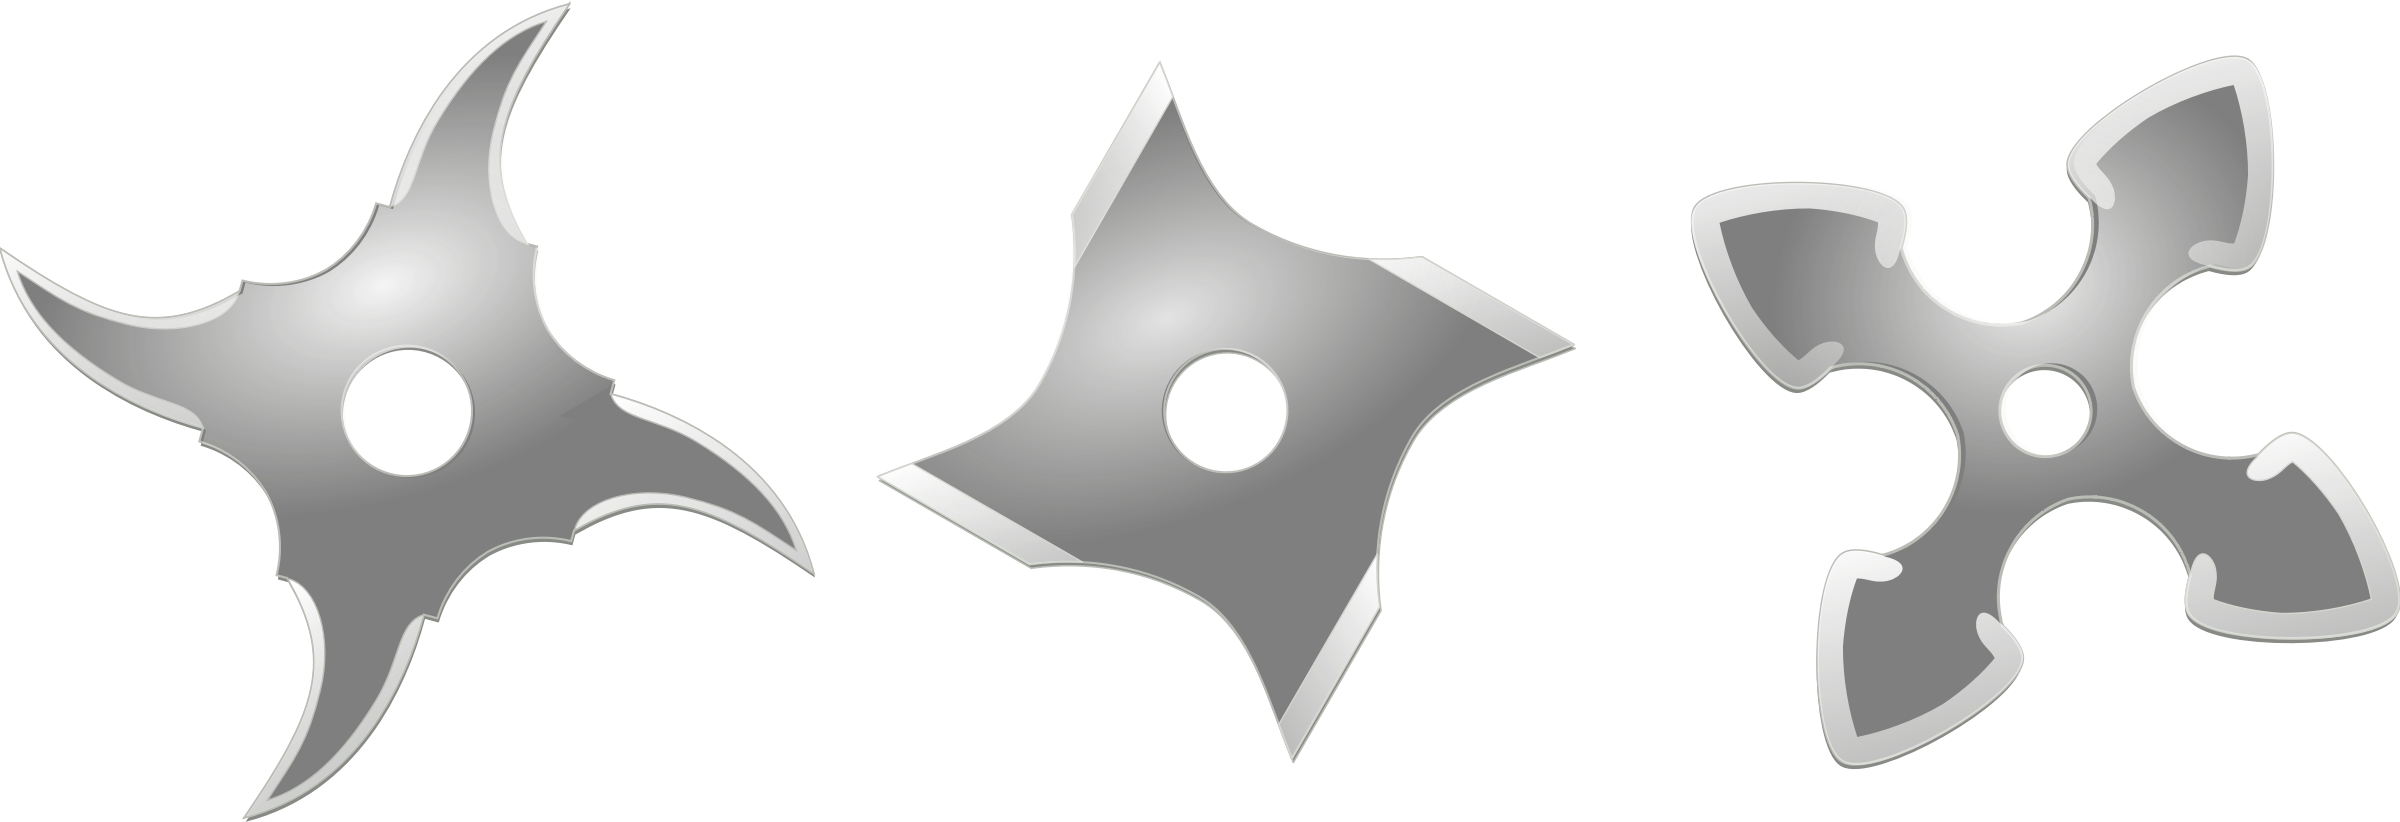 silver shurikens by ruthirsty